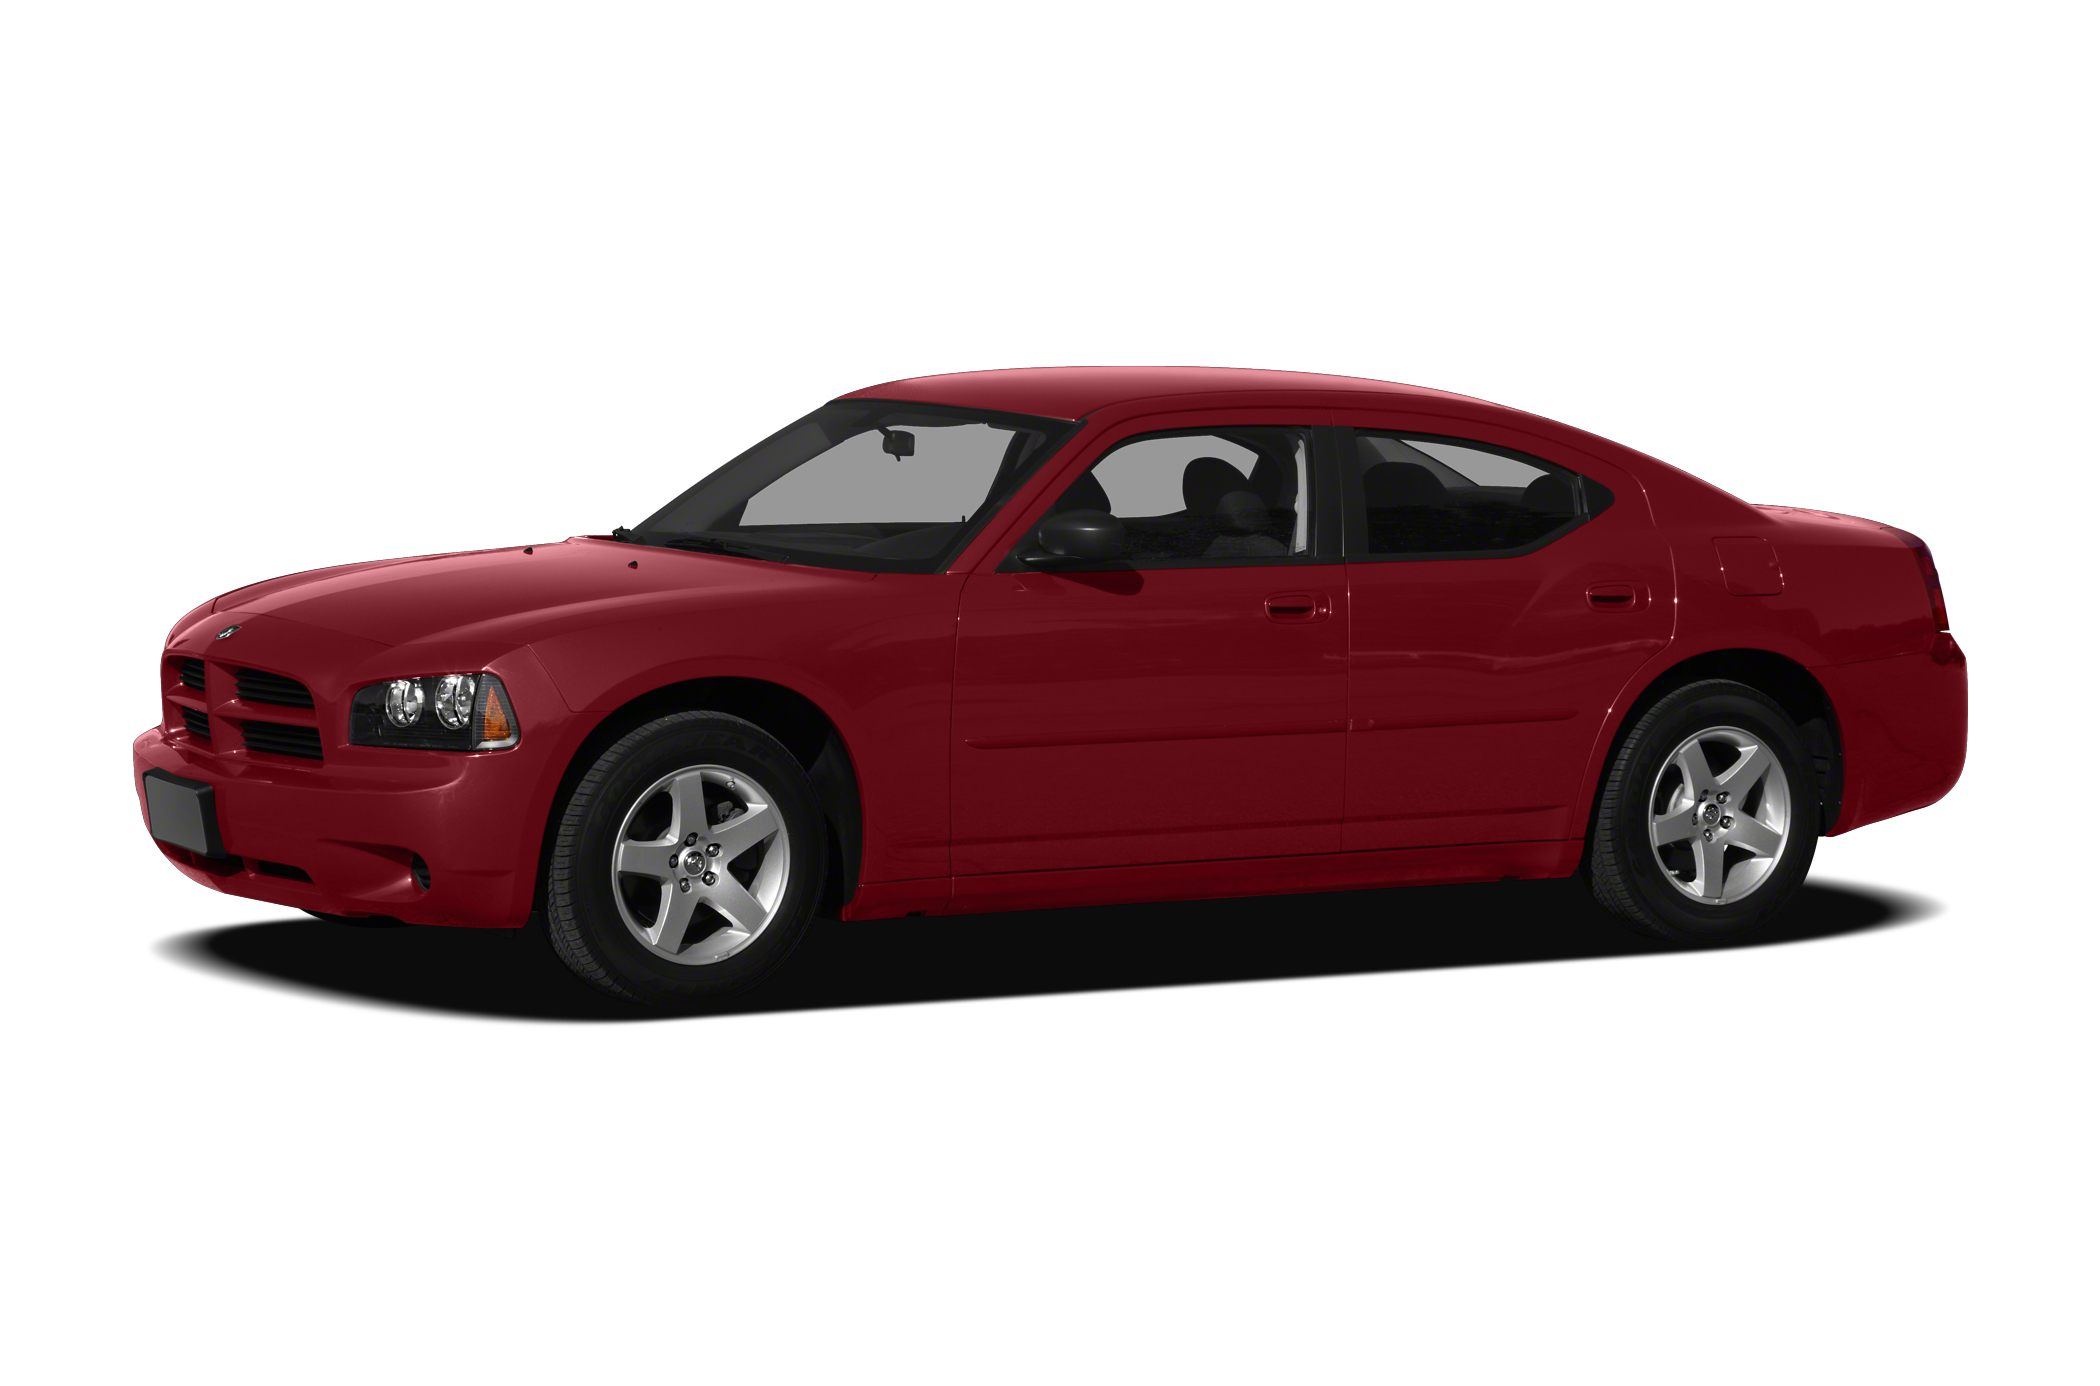 Used Dodge Charger for Sale Elegant Used Dodge Chargers for Sale Less Than 4 000 Dollars